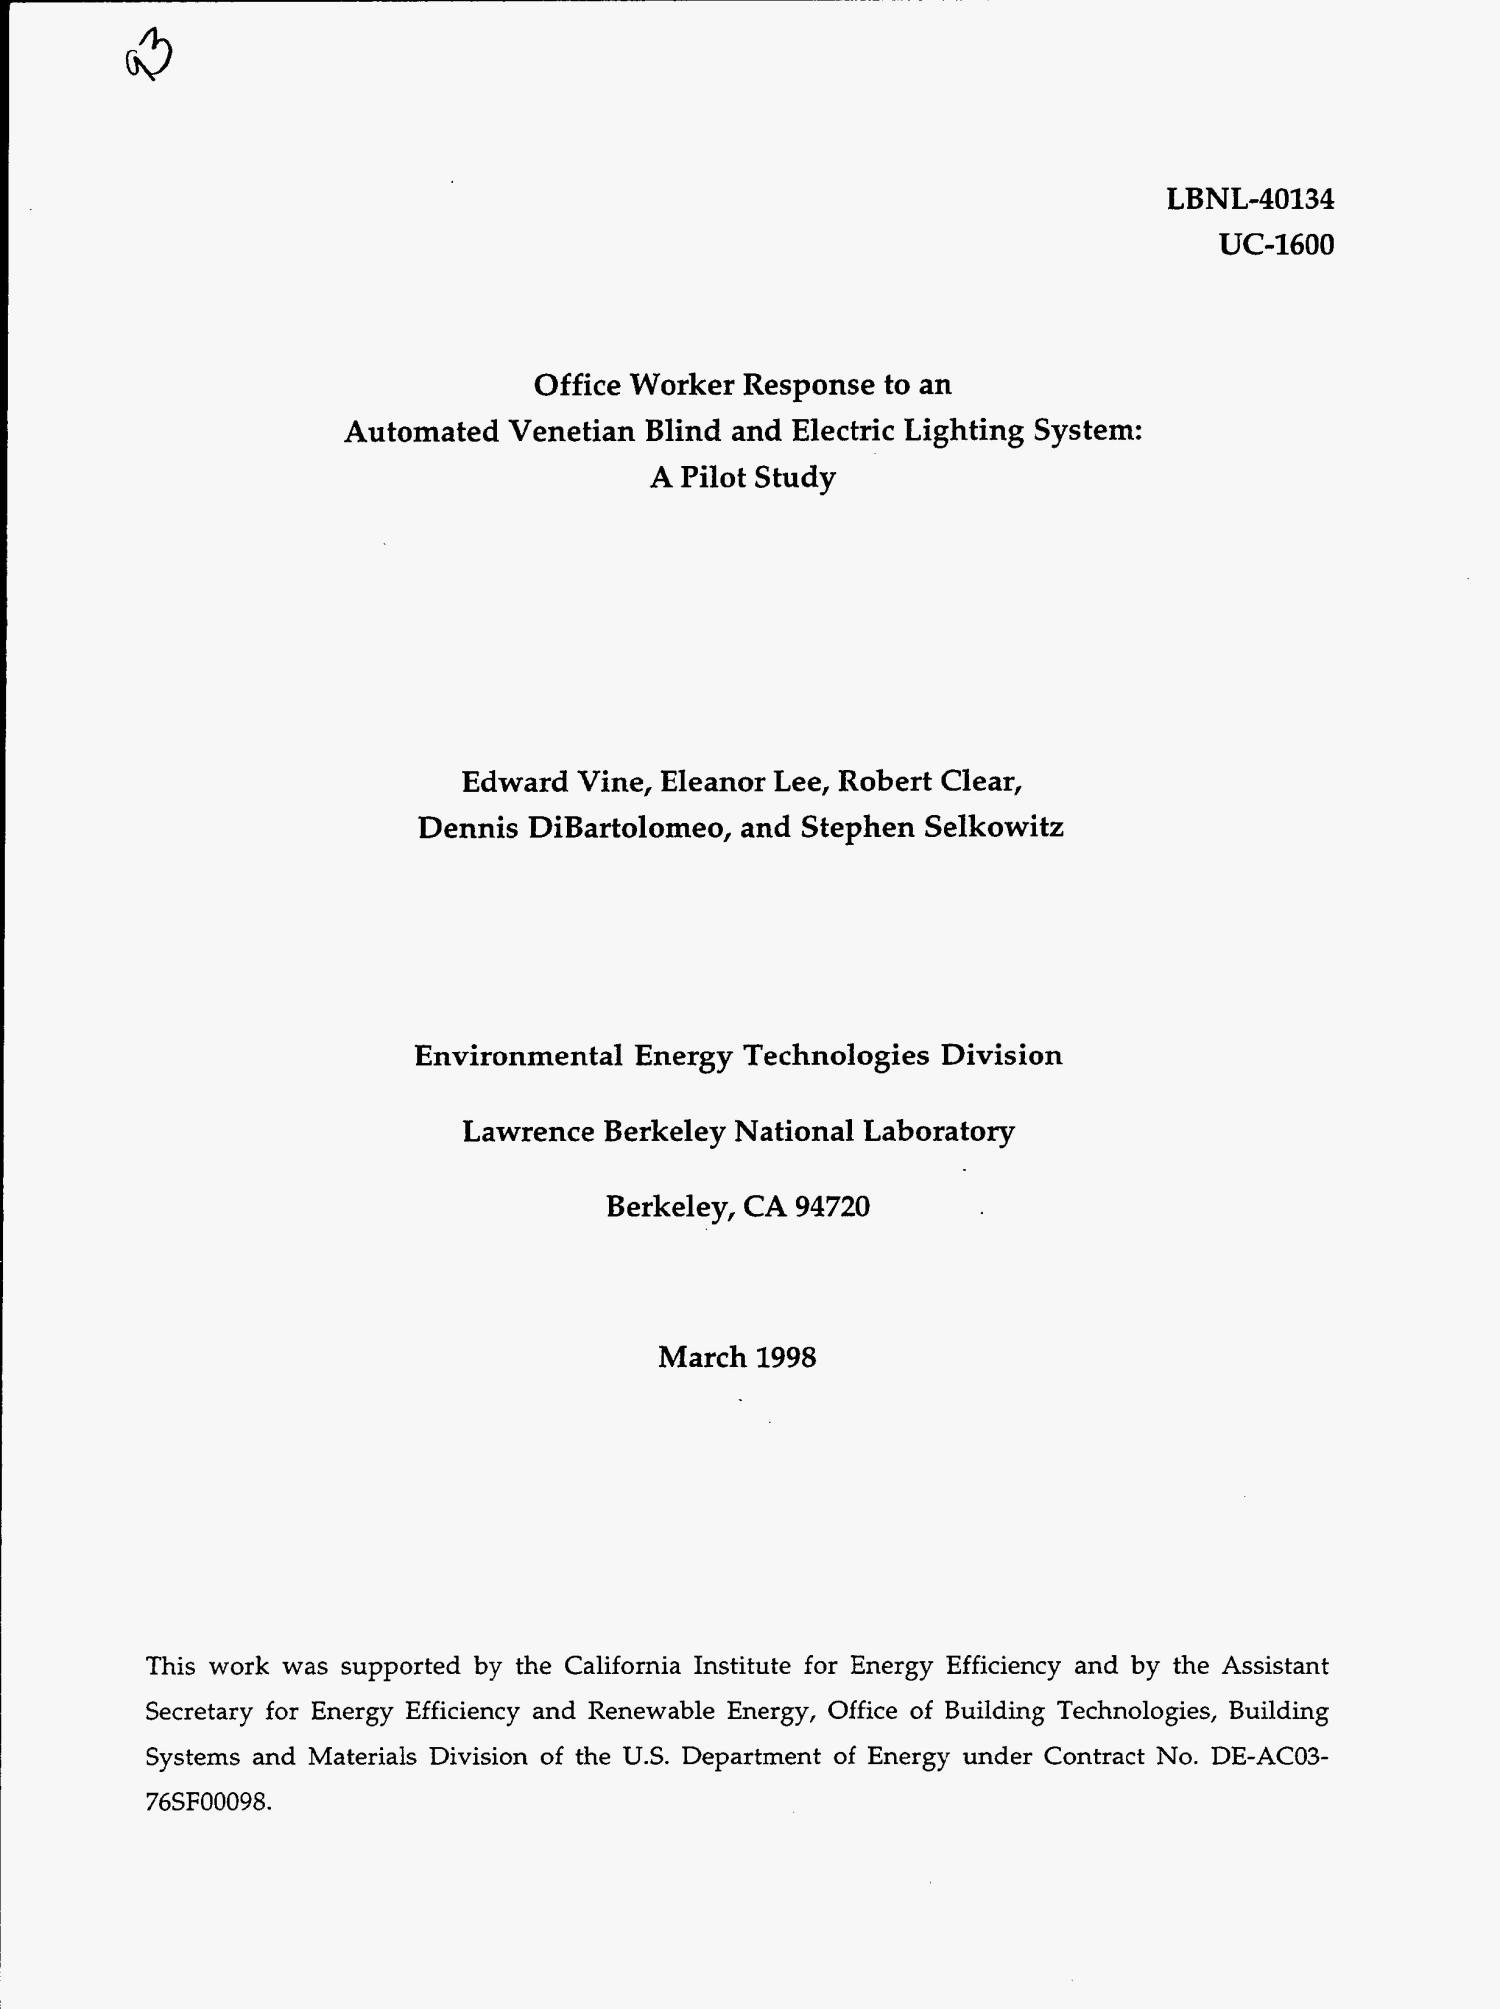 Office worker response to an automated venetian blind and electric lighting system: A pilot study                                                                                                      [Sequence #]: 3 of 32